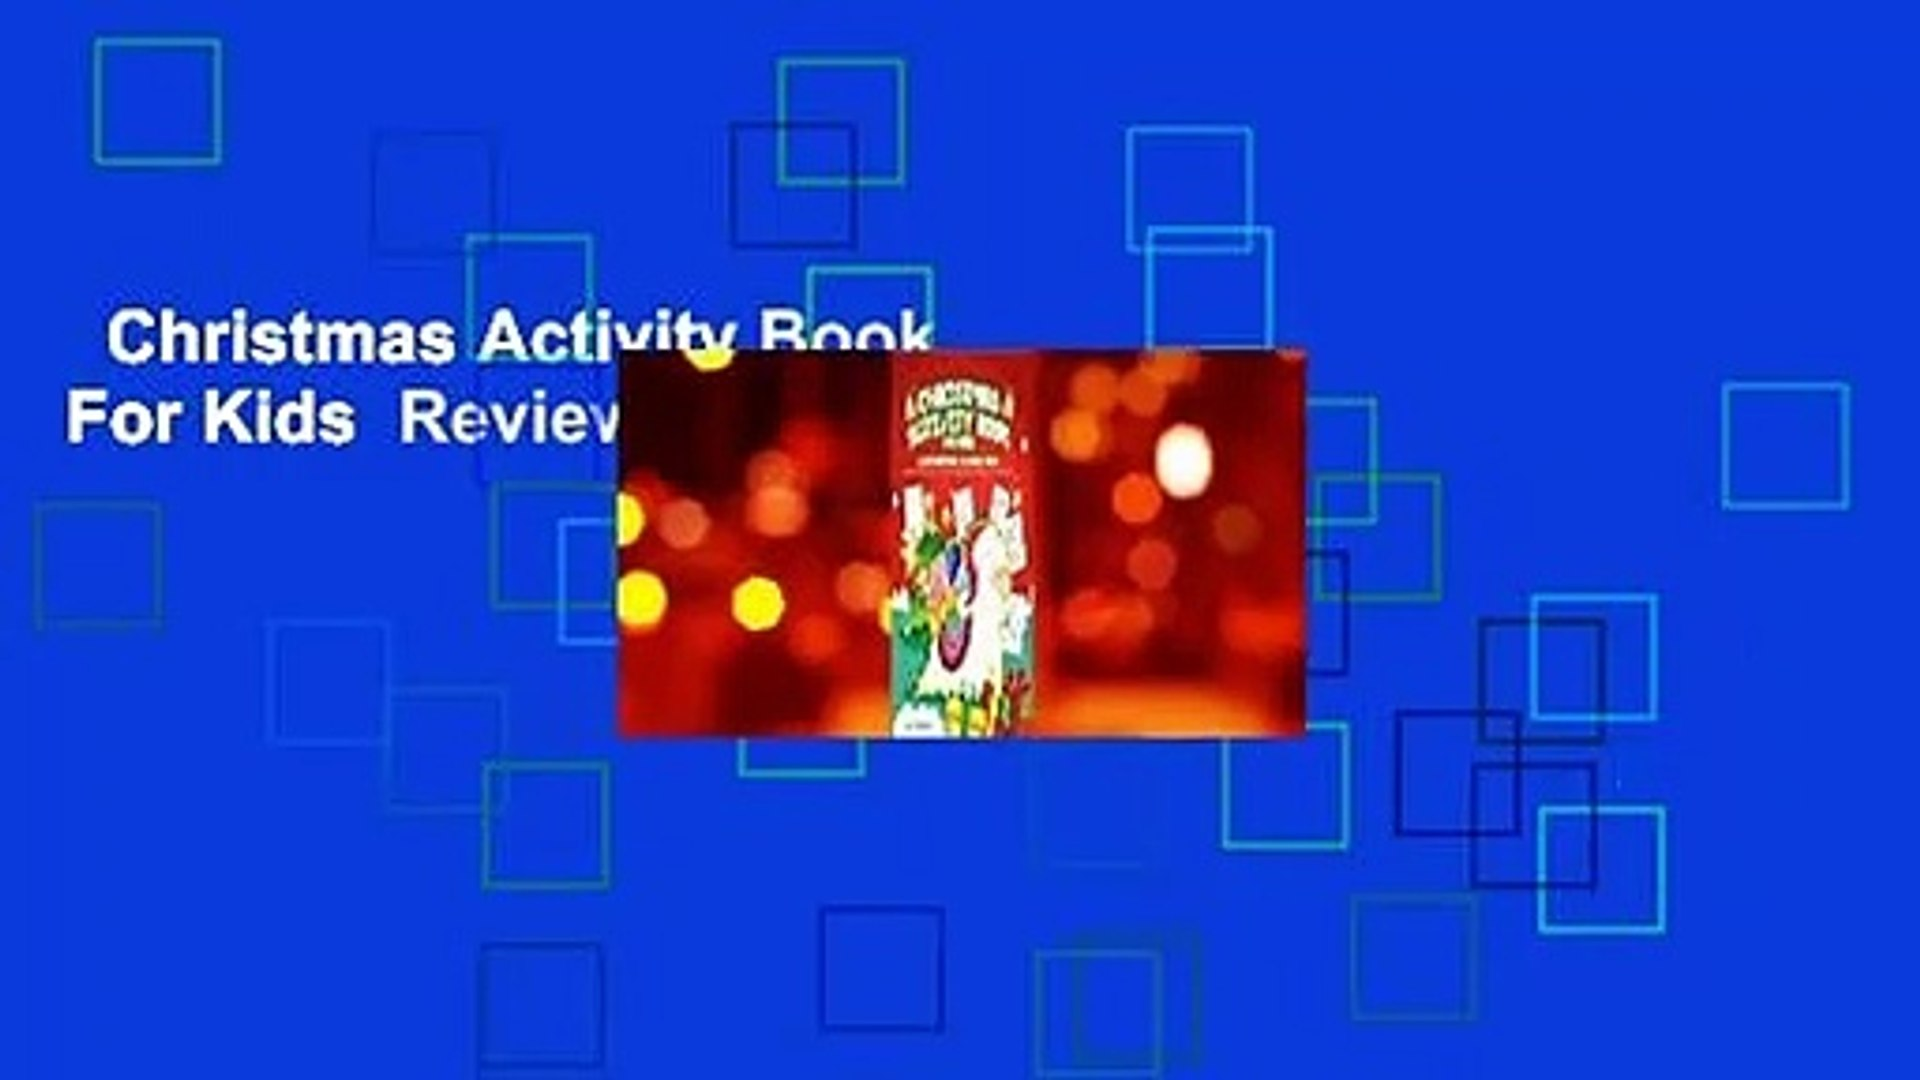 Christmas Activity Book For Kids  Review